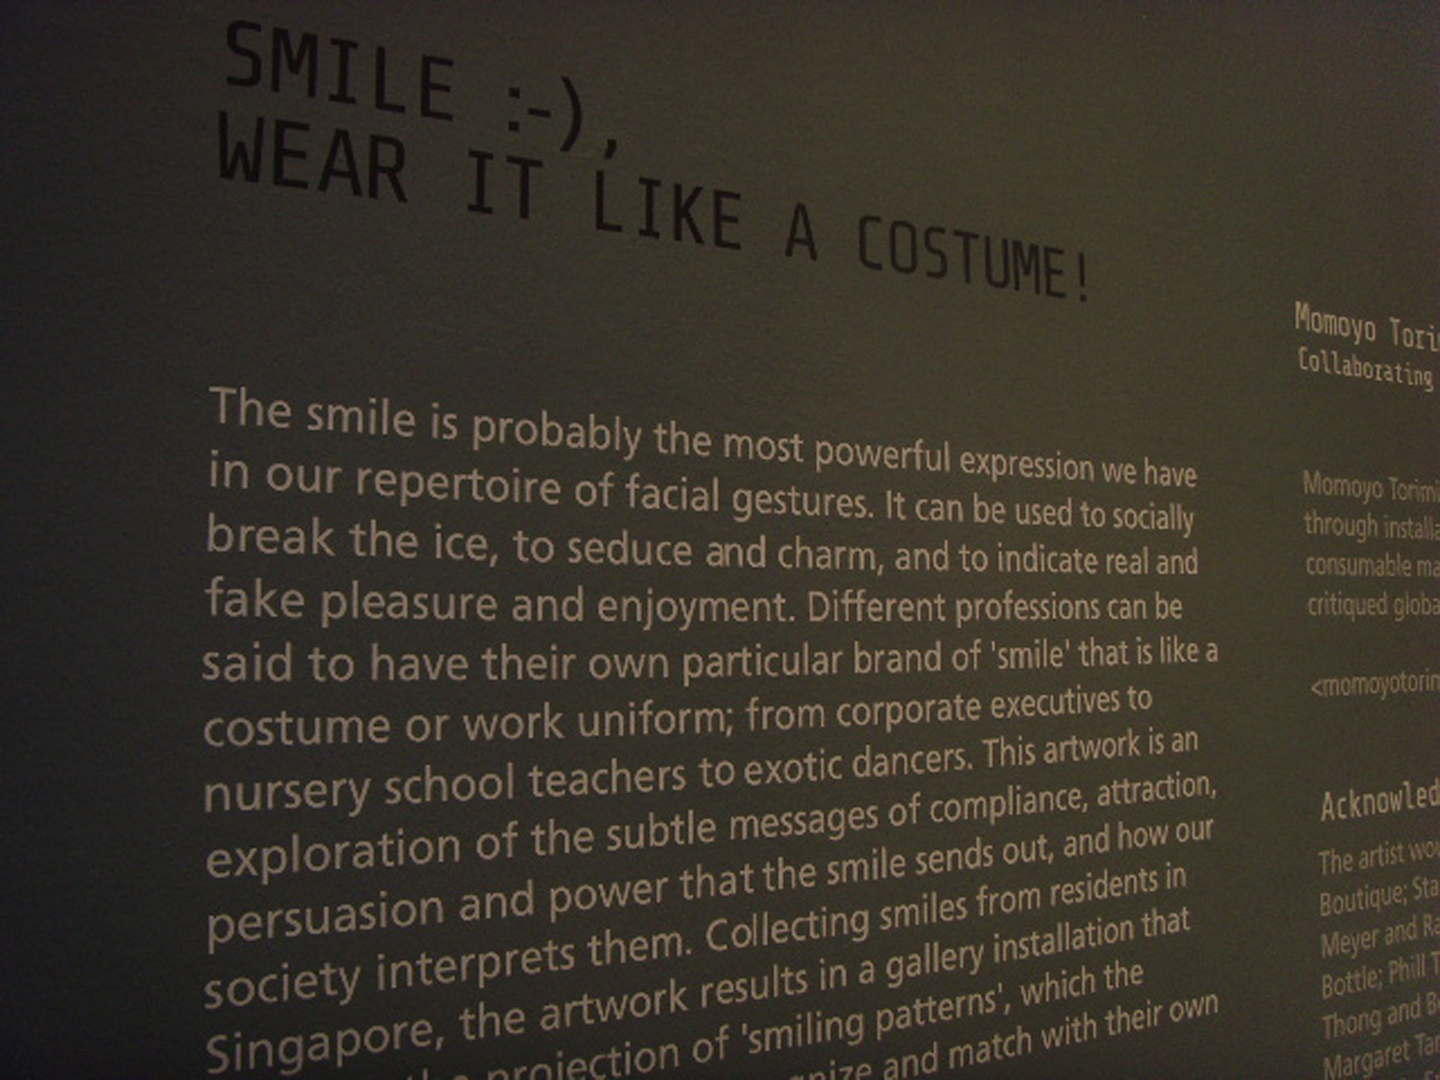 ©, Momoyo Torimitsu, Smile :-), Wear It Like a Costume!